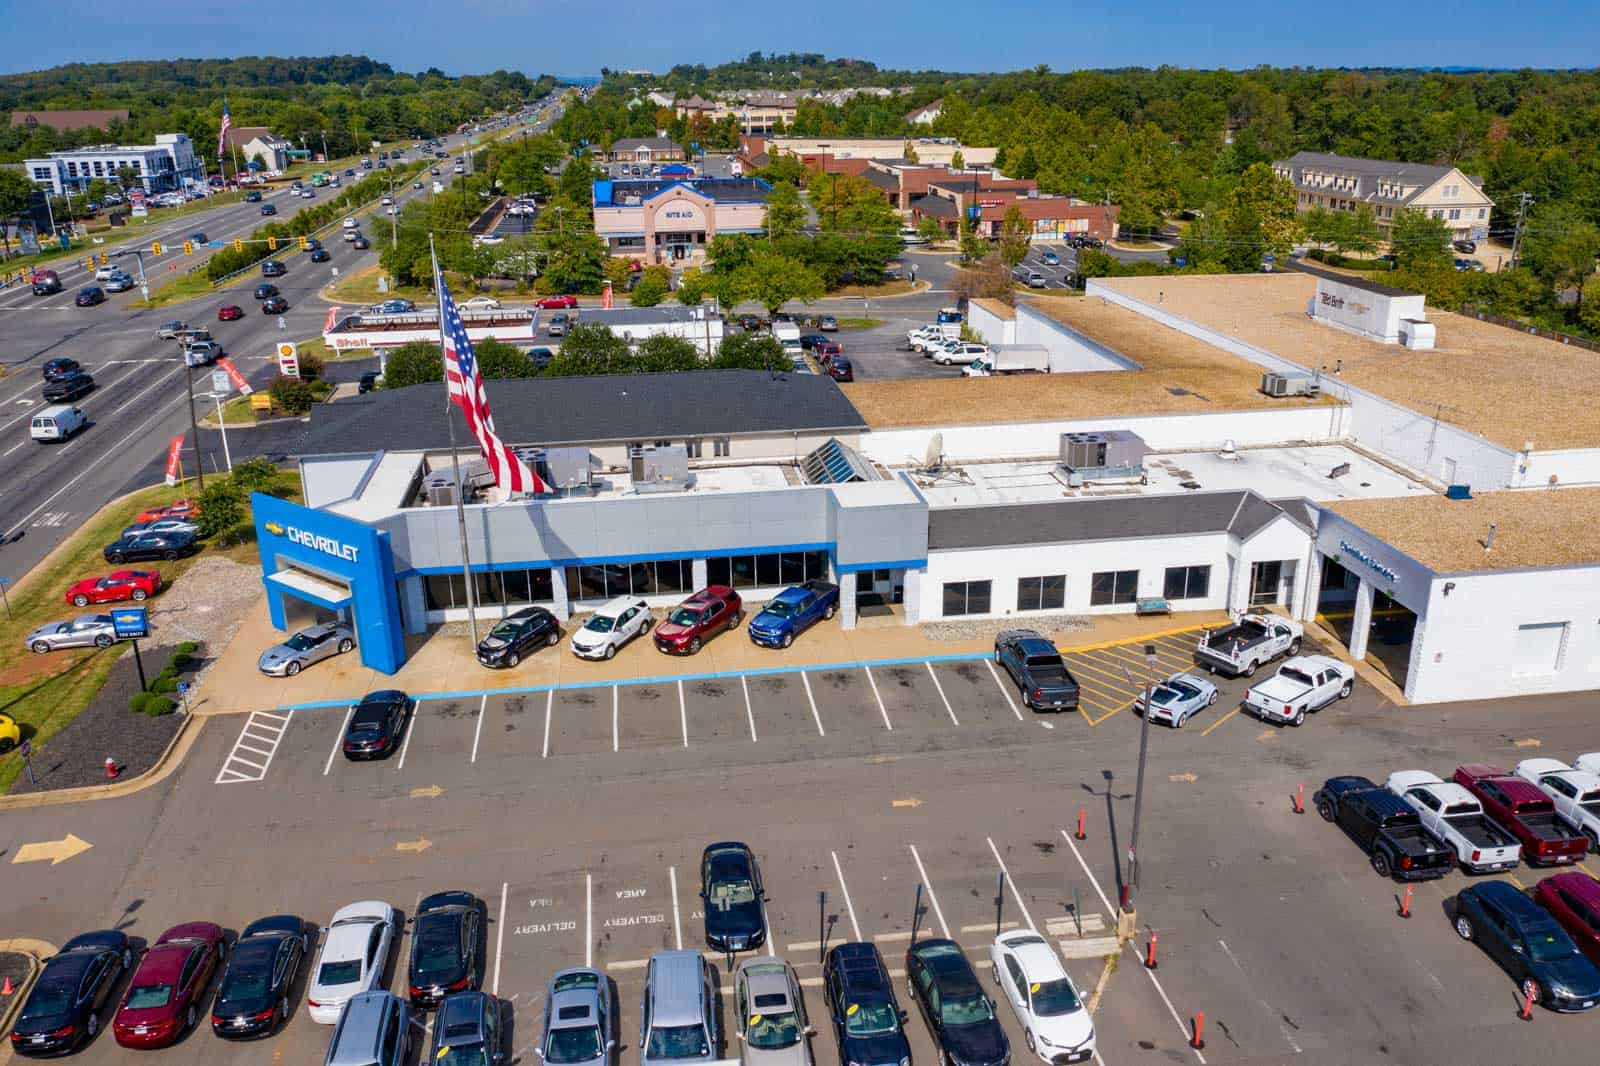 drone photo of Chevrolet dealership entrance with large American flag in Sterling, VA